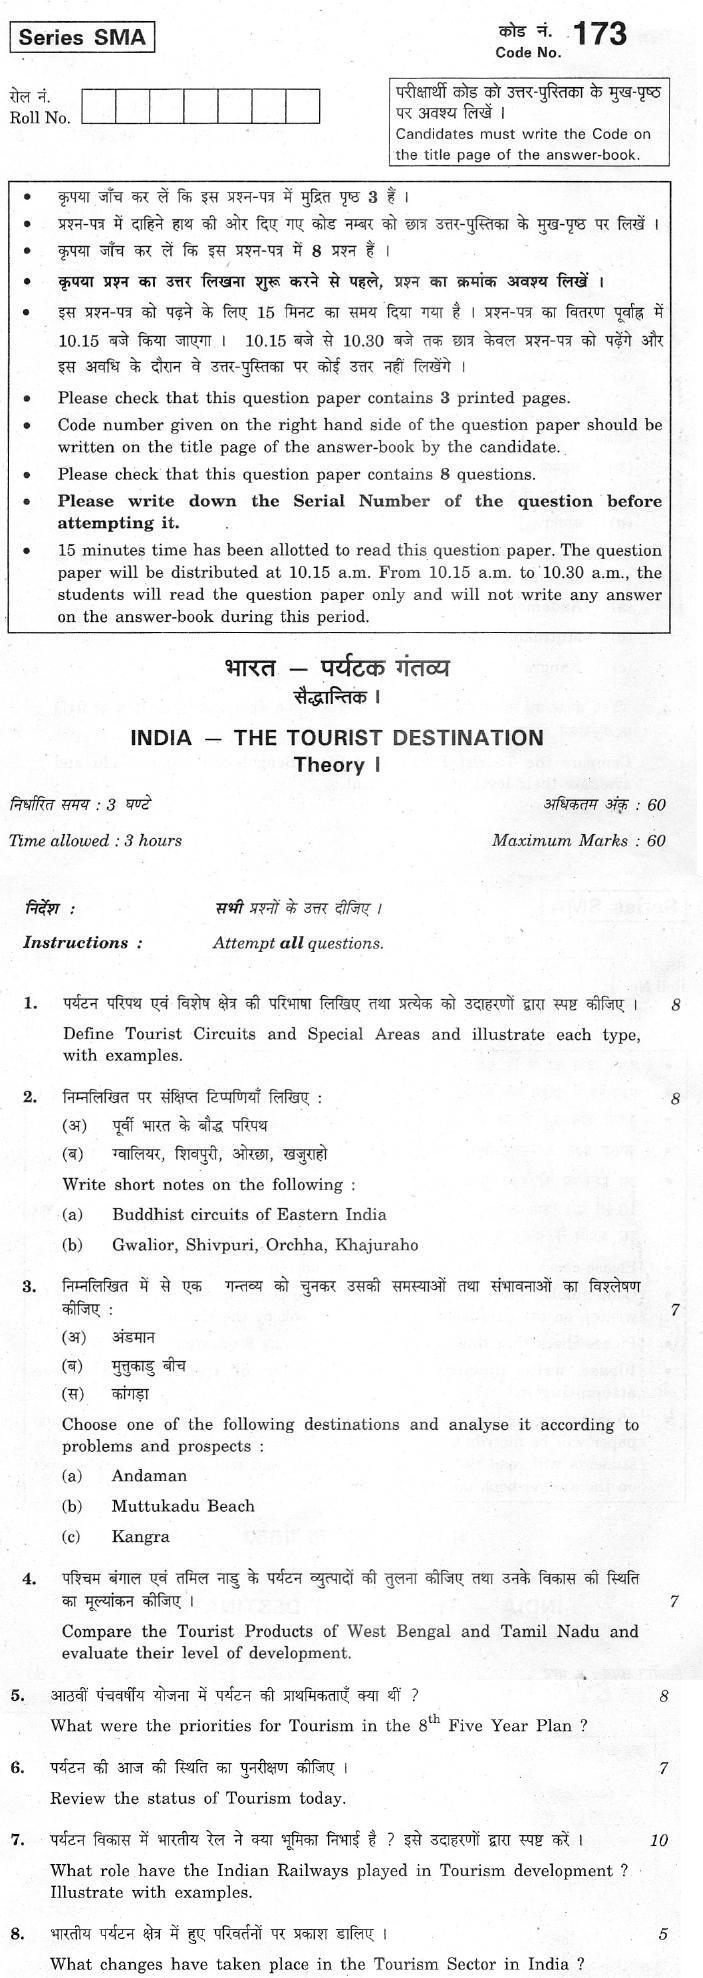 CBSE Class XII Previous Year Question Paper 2012 India -The Tourist Destination